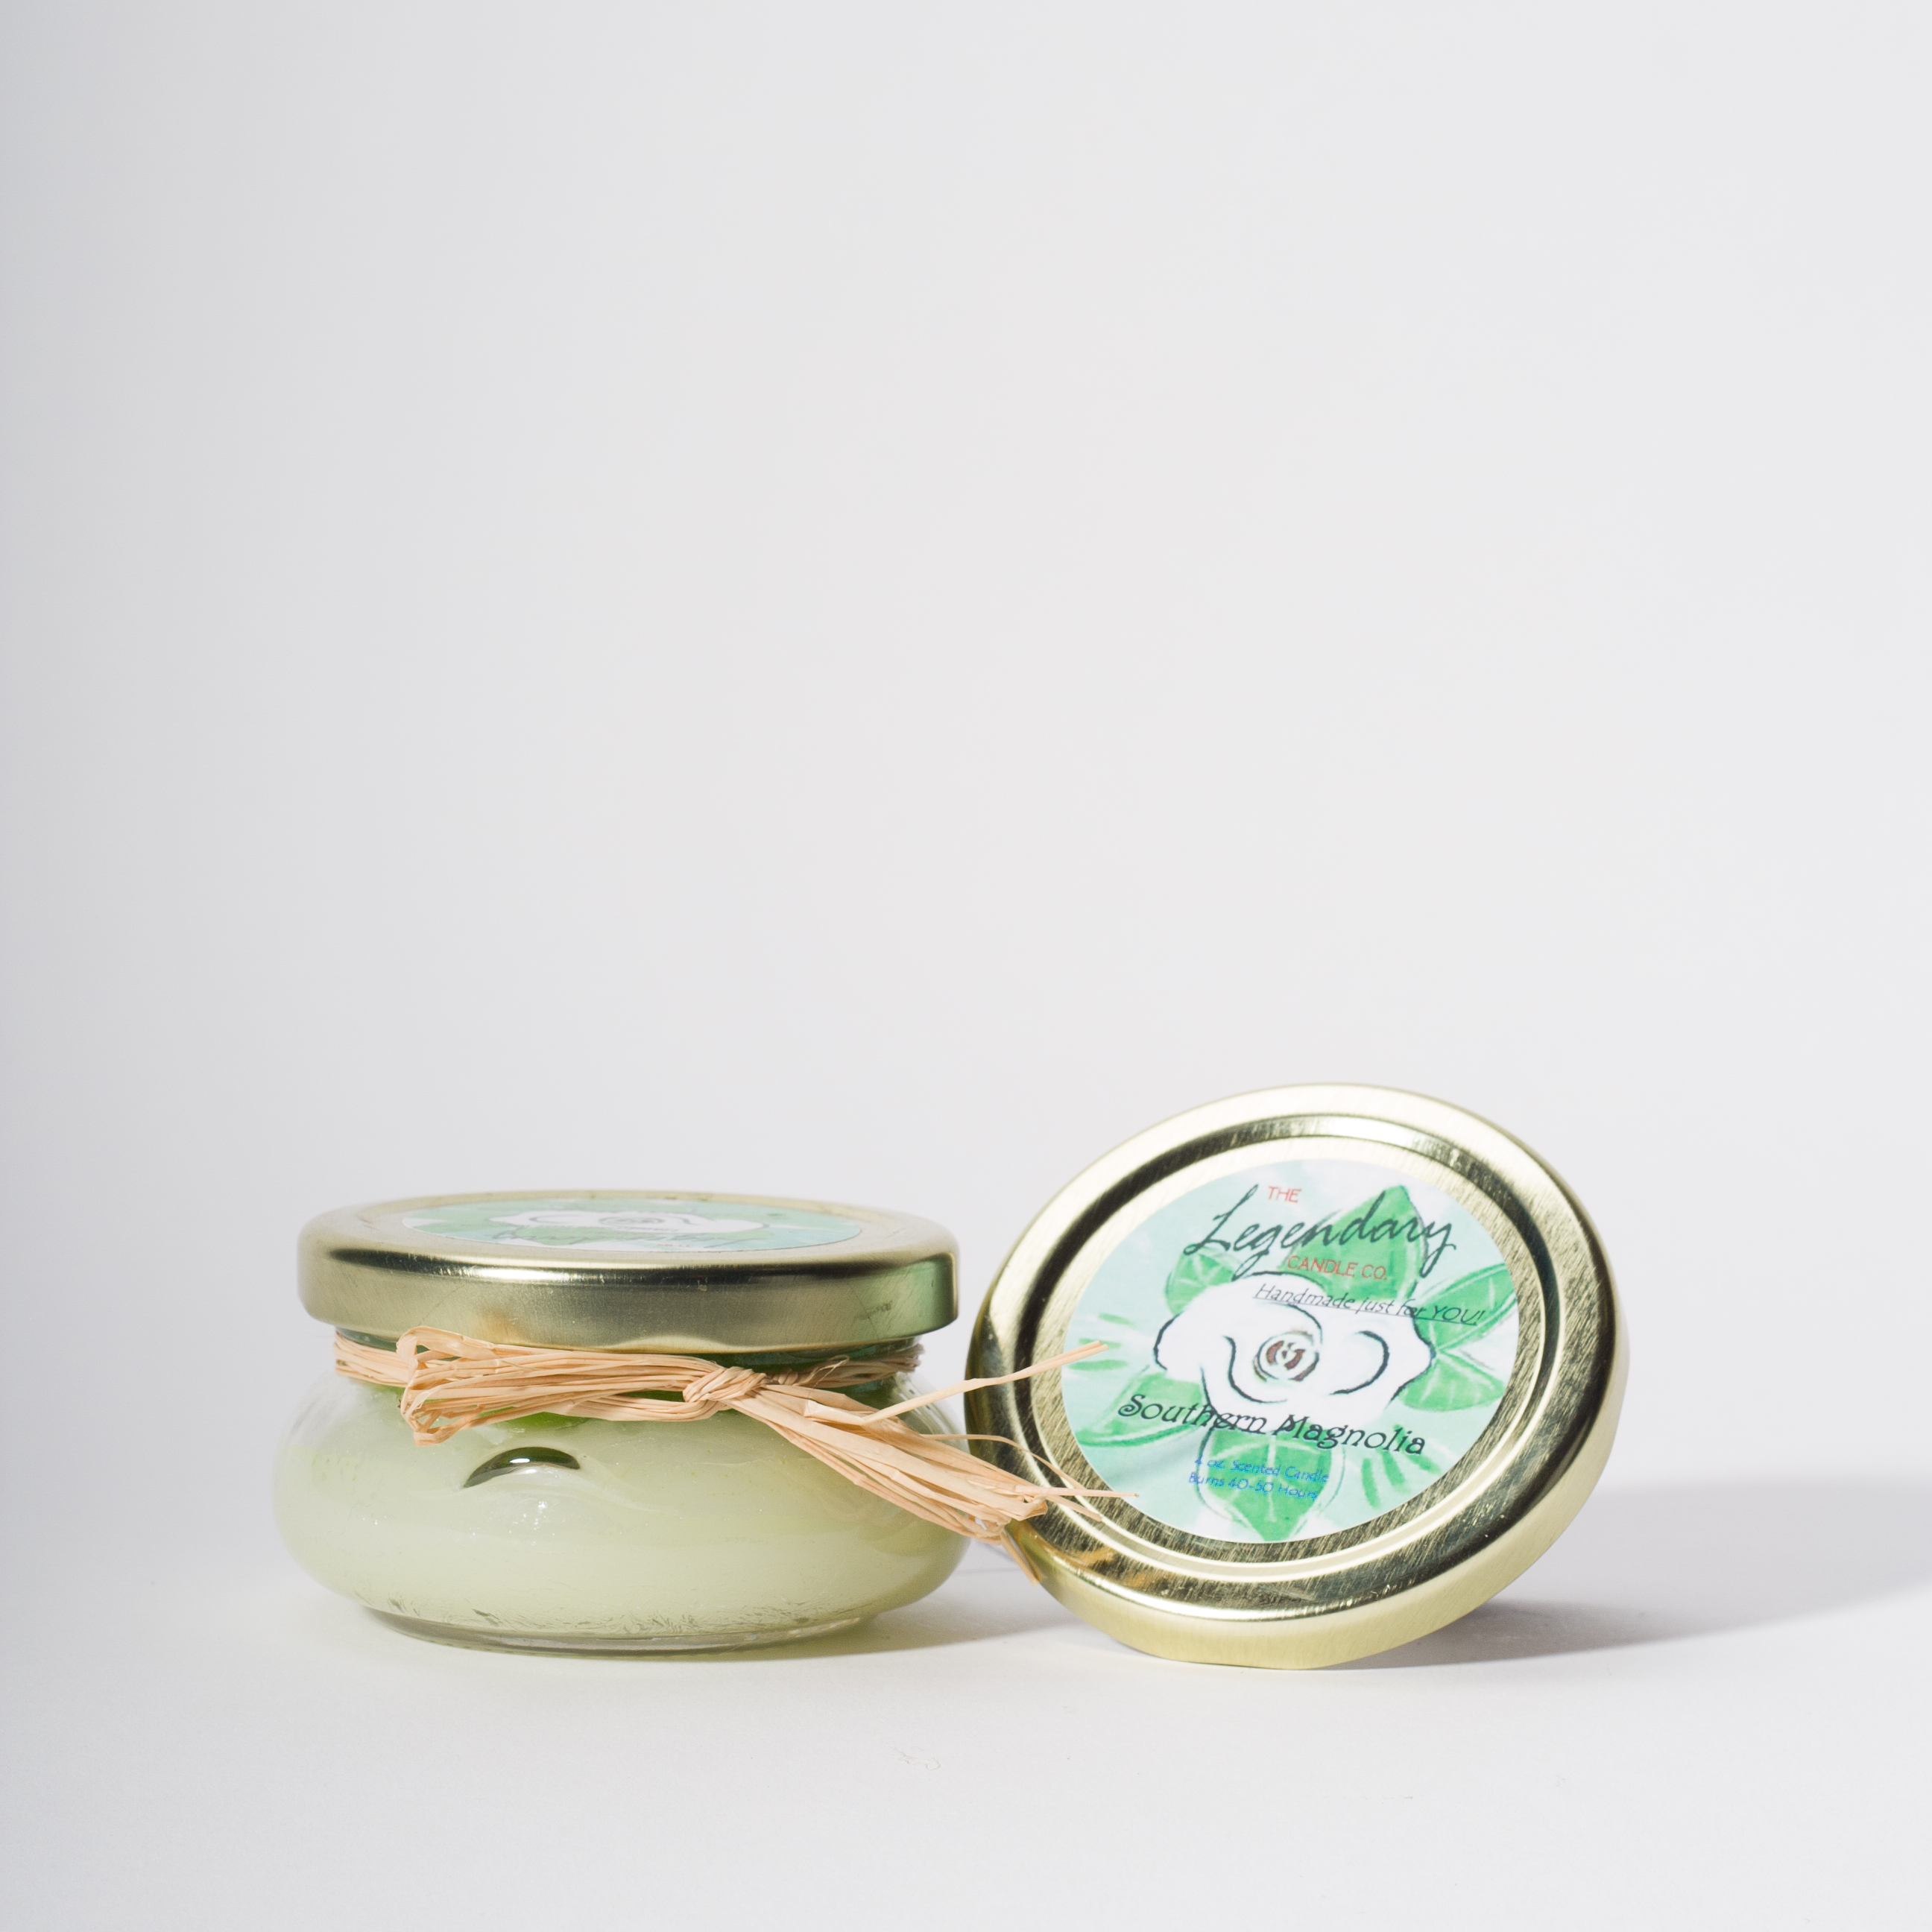 4 Ounce Southern Magnolia Scented Tureen Jar Candle